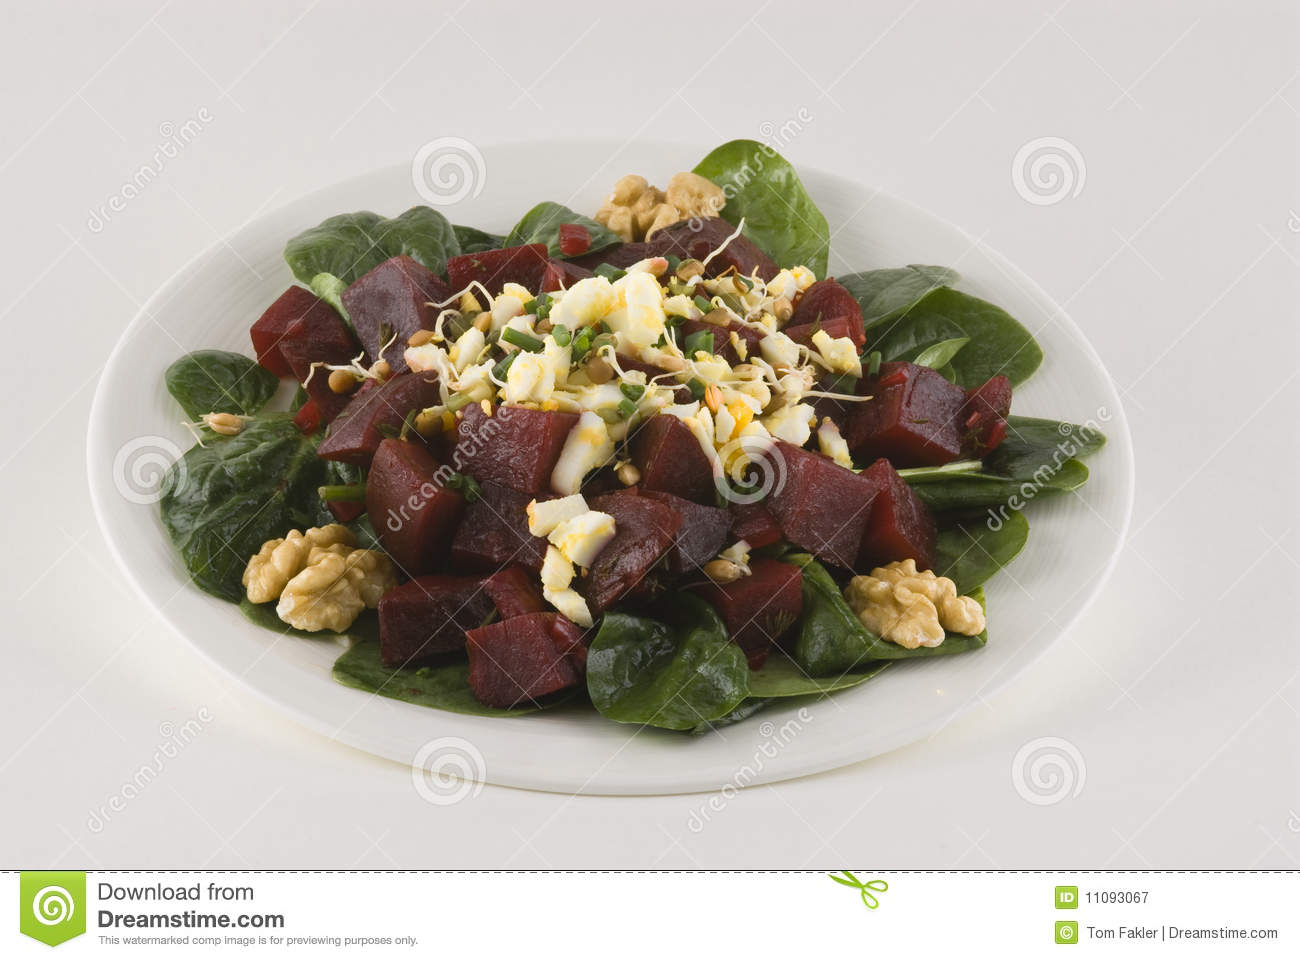 ... Free Stock Photography: Salad with beets, boiled egg, and bean sprouts